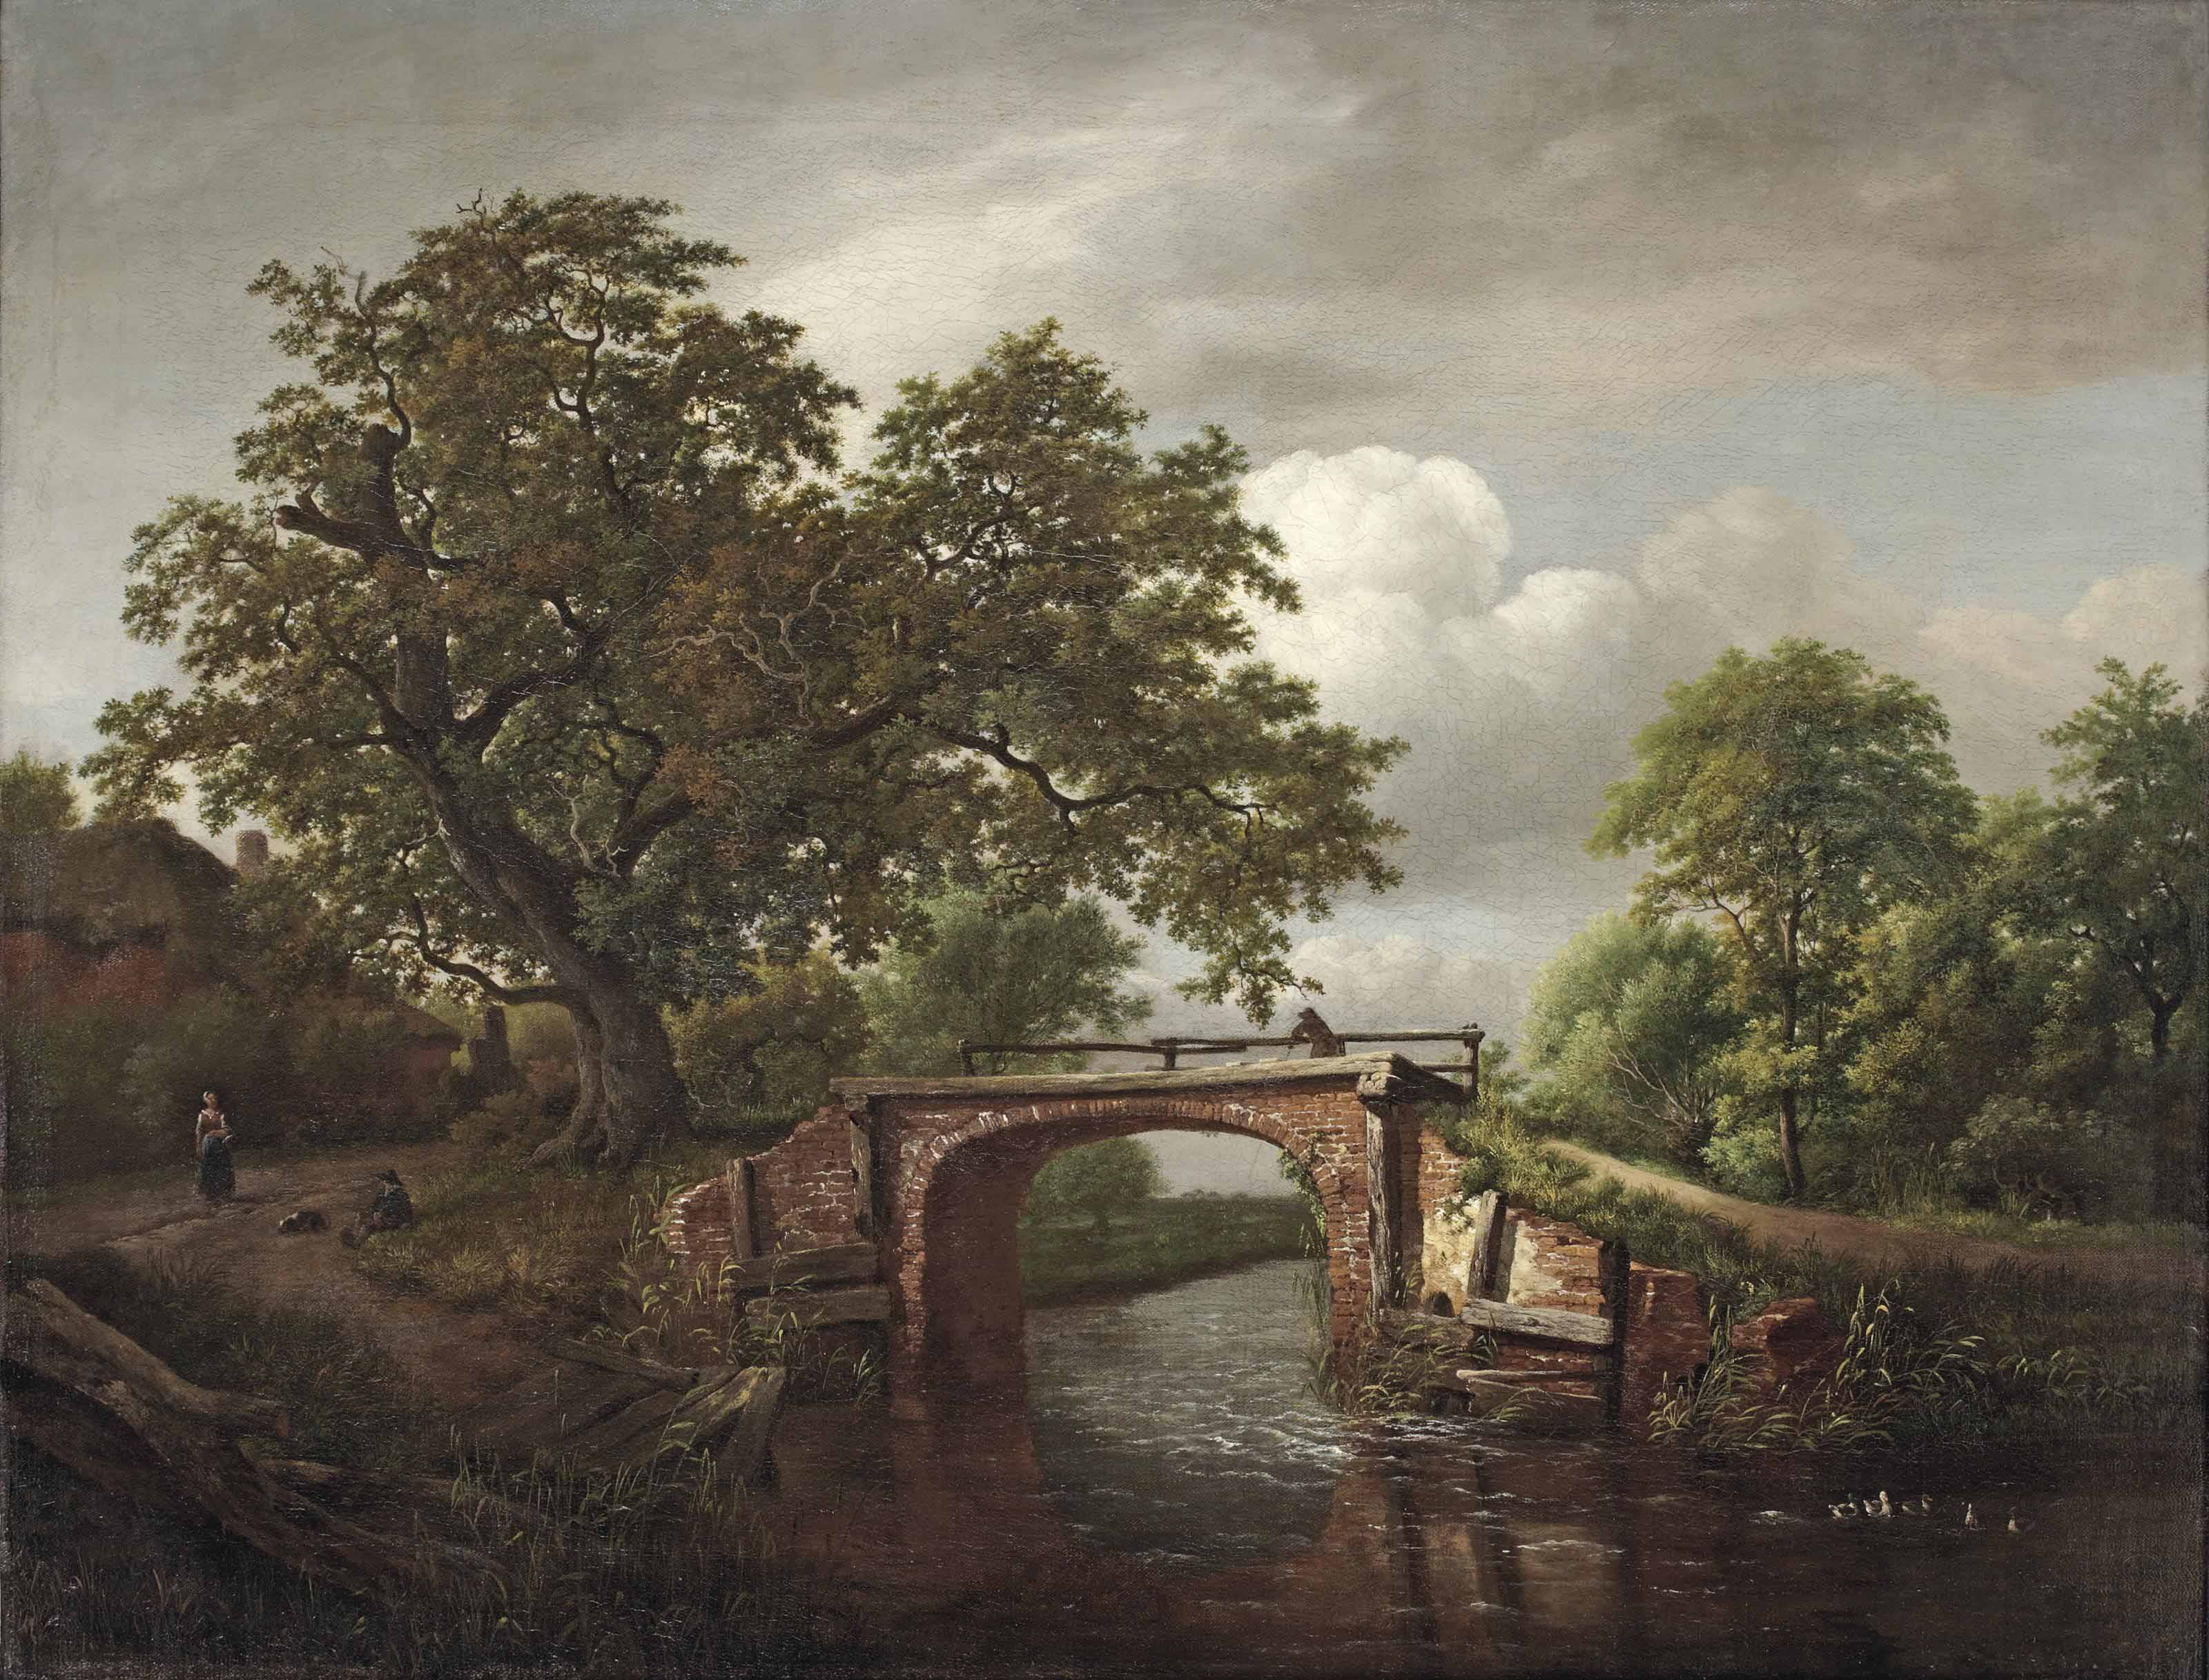 A wooded river landscape with a traveller crossing a stone bridge near an oak tree and a farm house